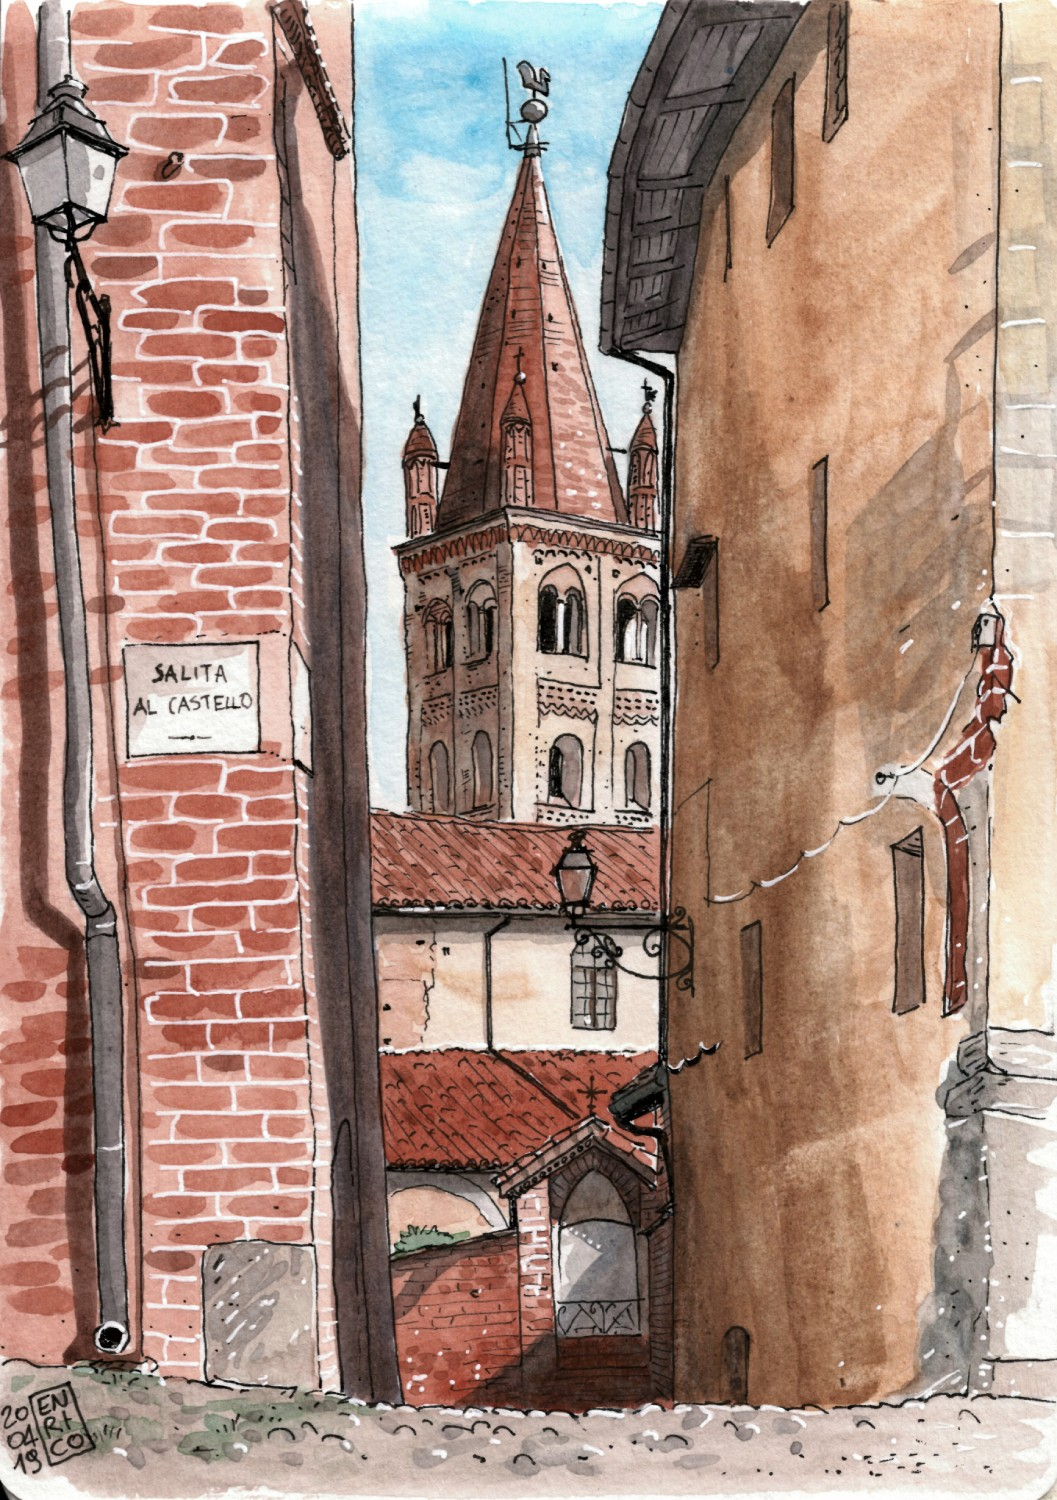 Back in my hometown, Saluzzo, for Eastern. I almost forgot how beautiful the old town on the hill is. This is the narrow passage that leads to S. Giovanni church.